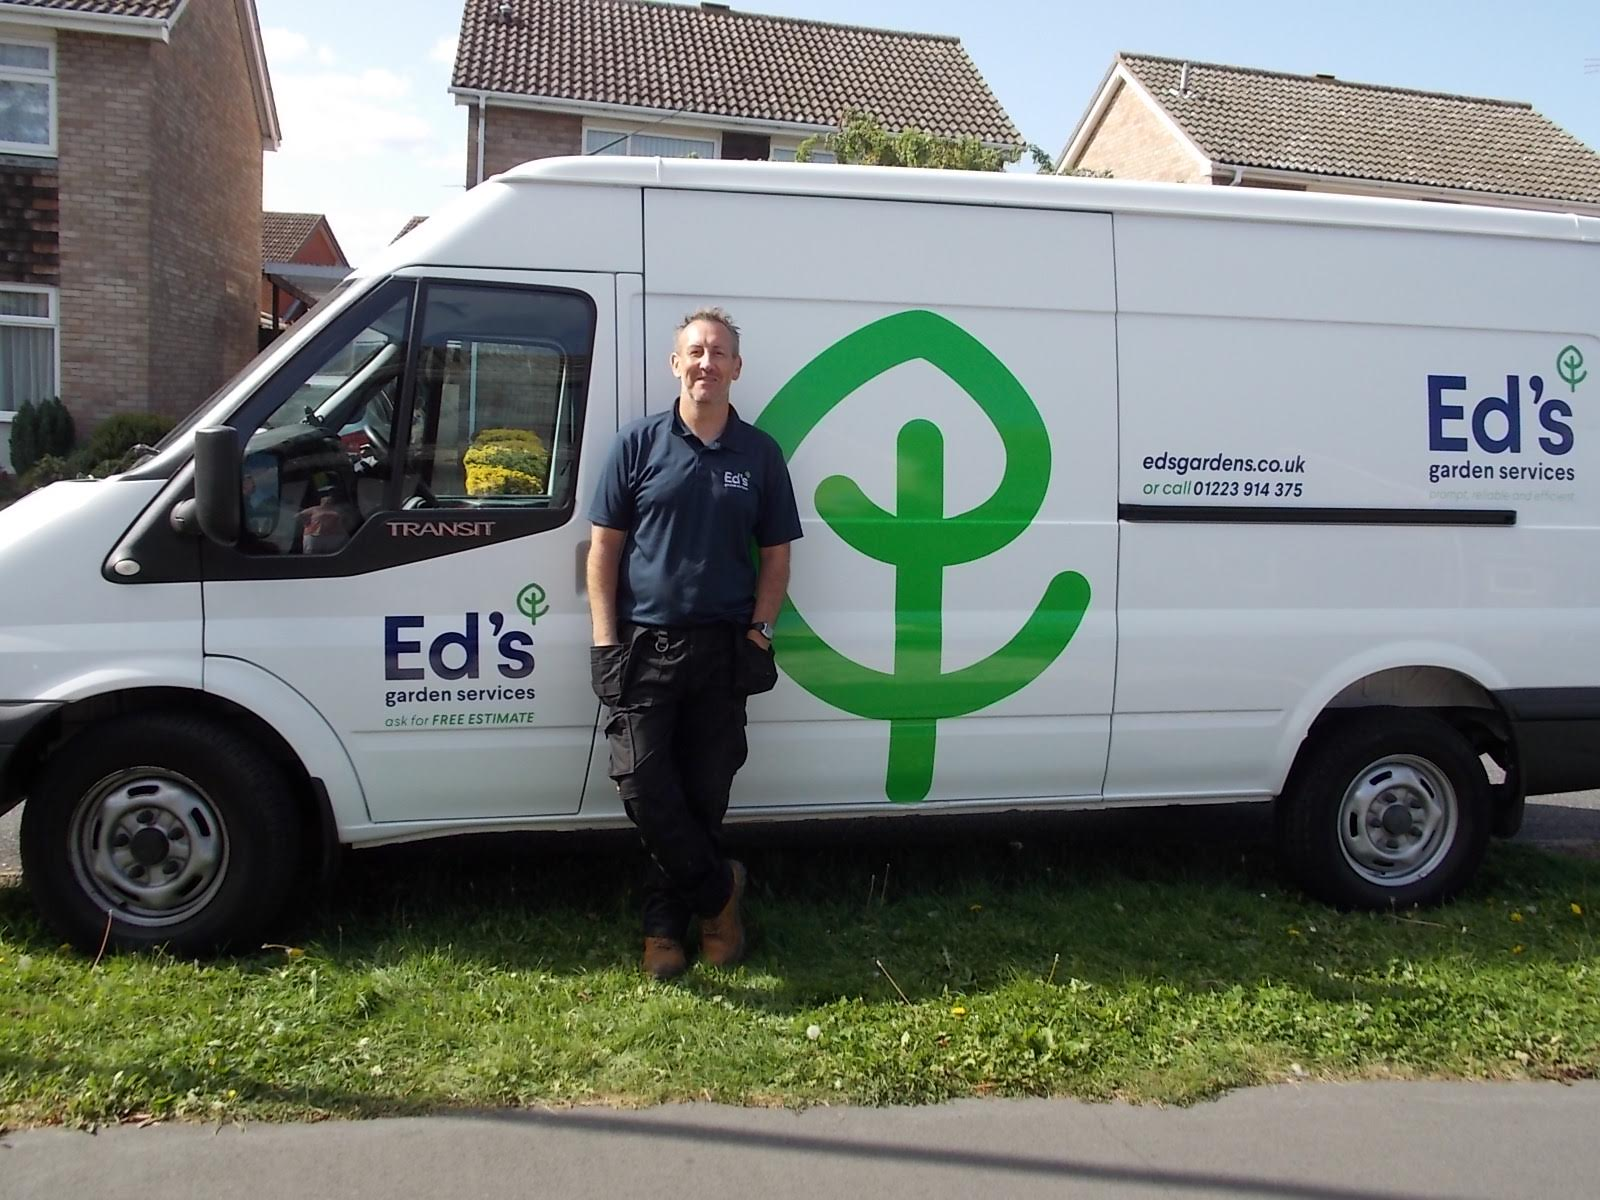 Ali with Ed's Garden Services branded van